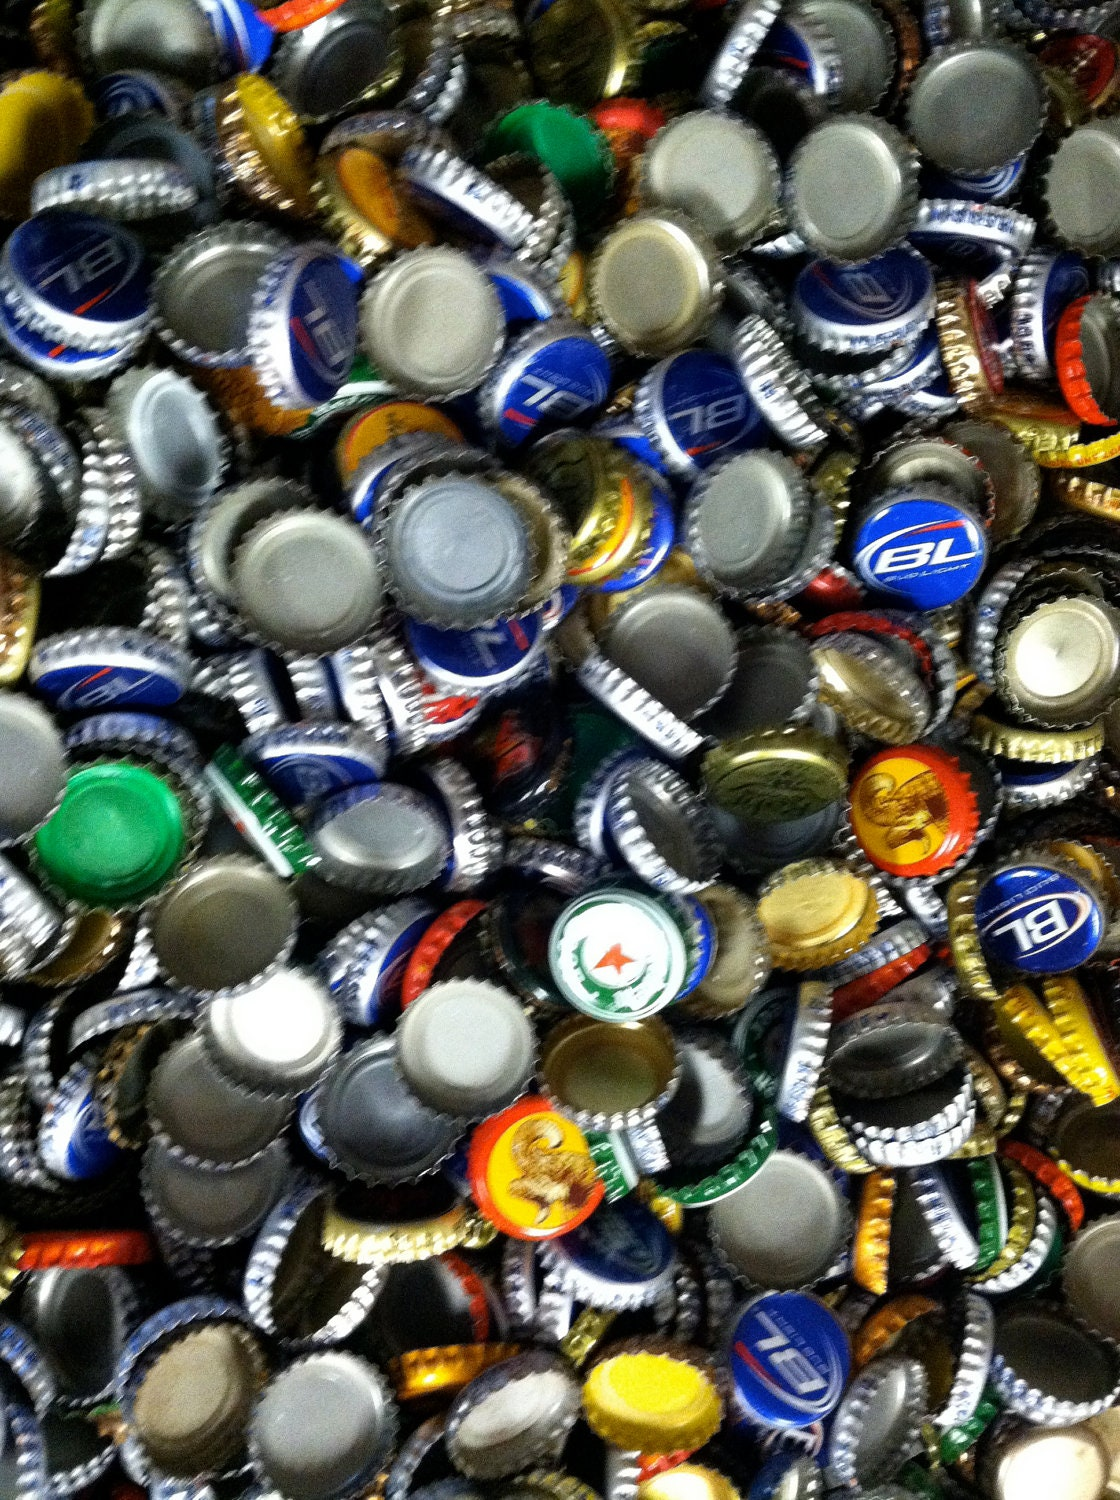 beer caps 1 pound of misc used beer bottle caps